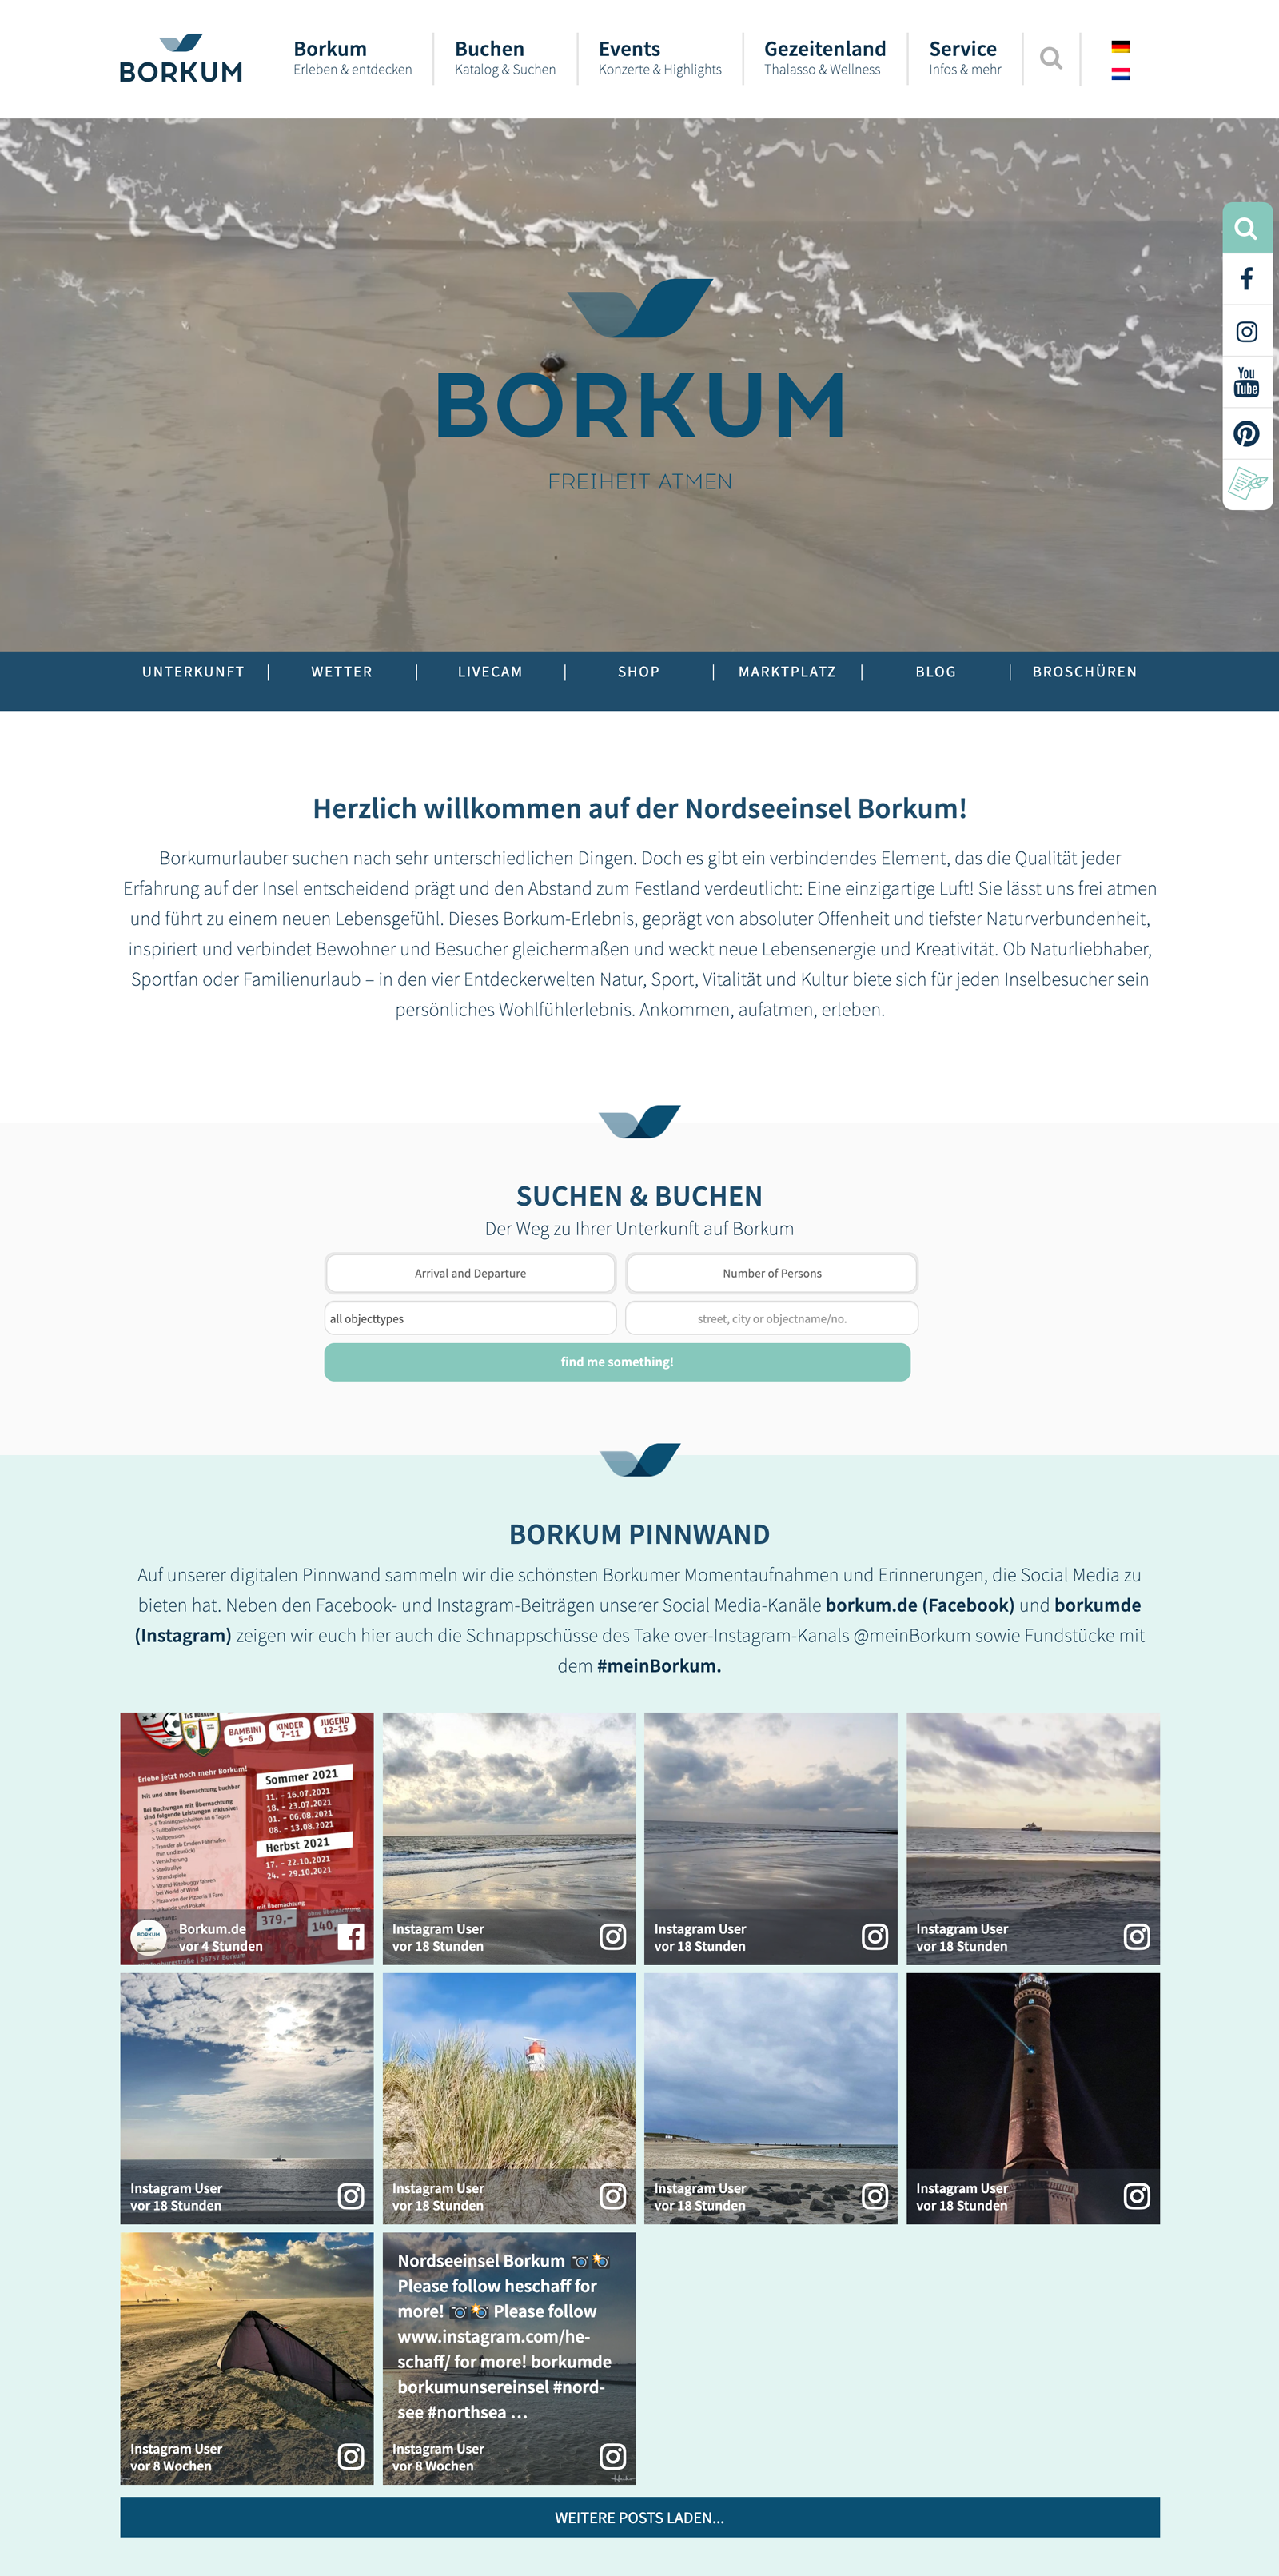 The screenshot shows the social media wall embedded on the borkum.de website.